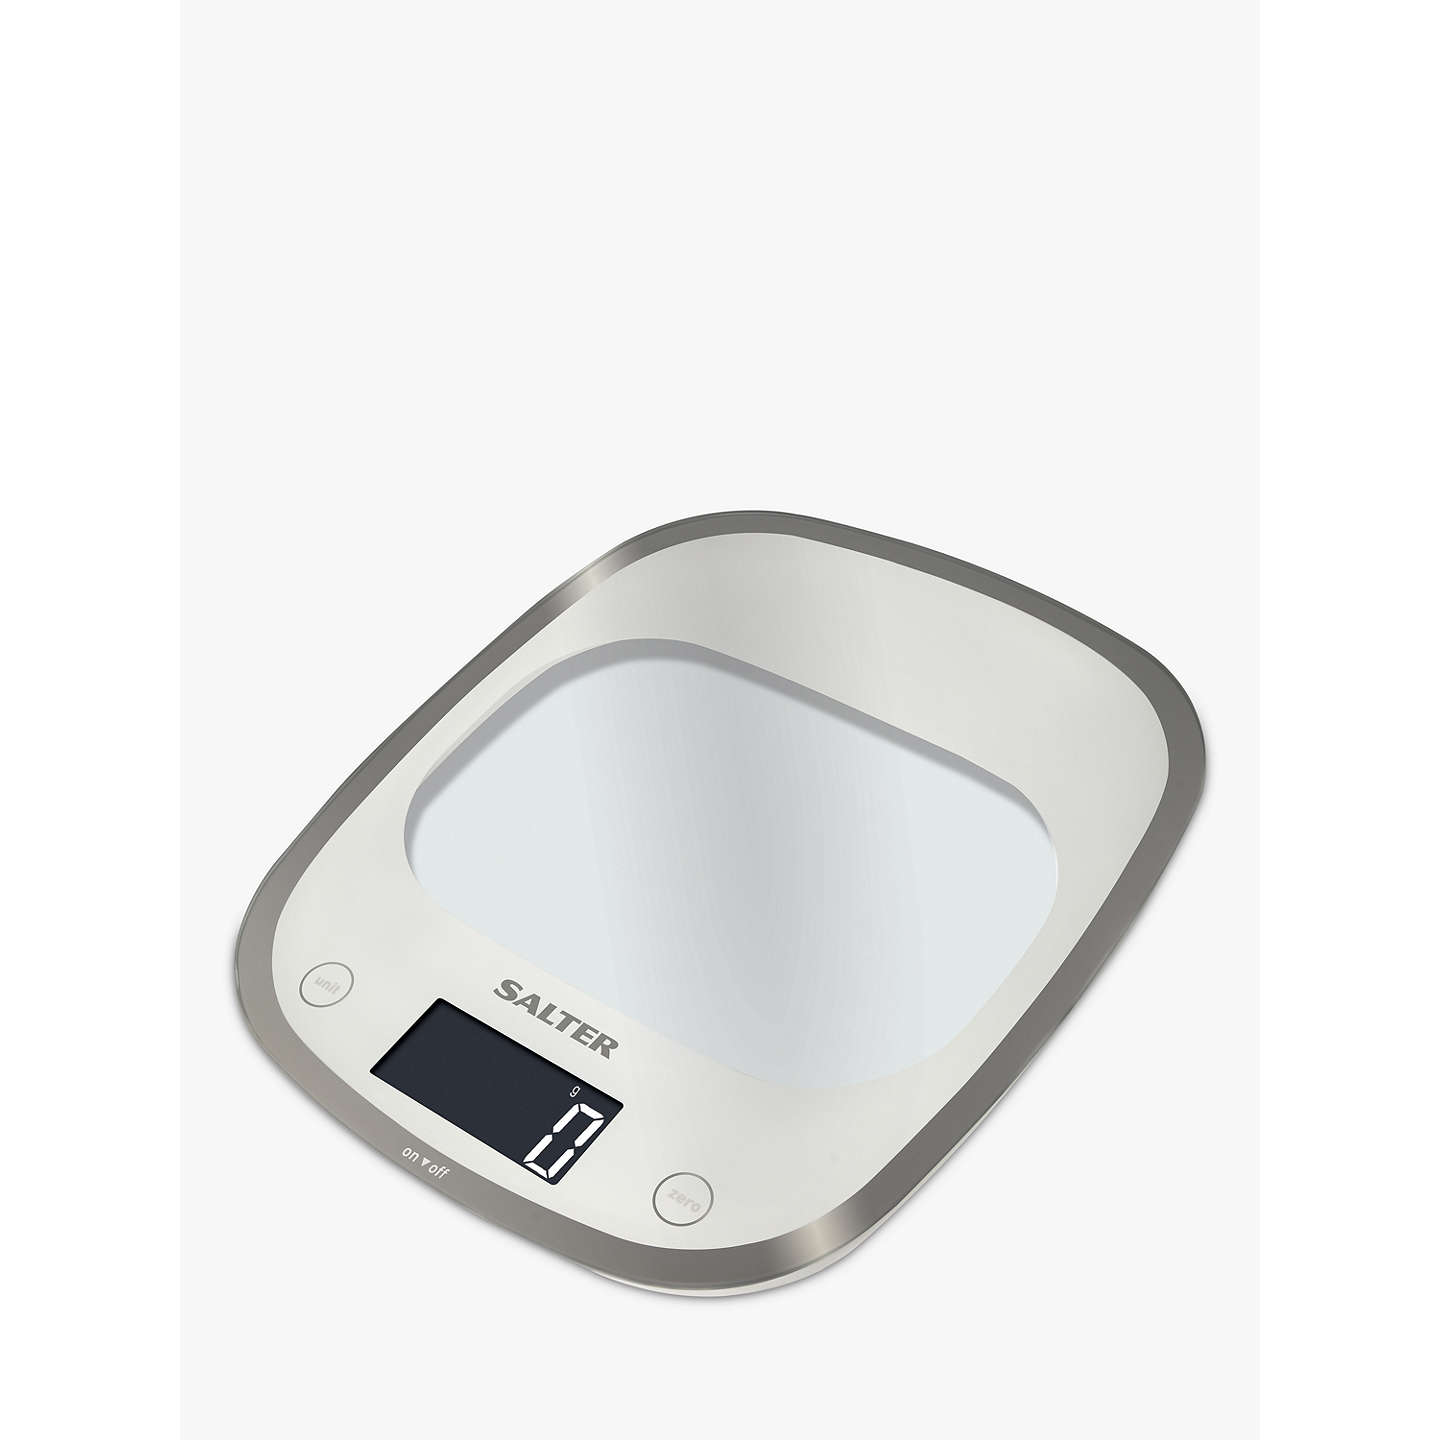 Salter Curve Glass Electronic Kitchen Scale, White at John Lewis